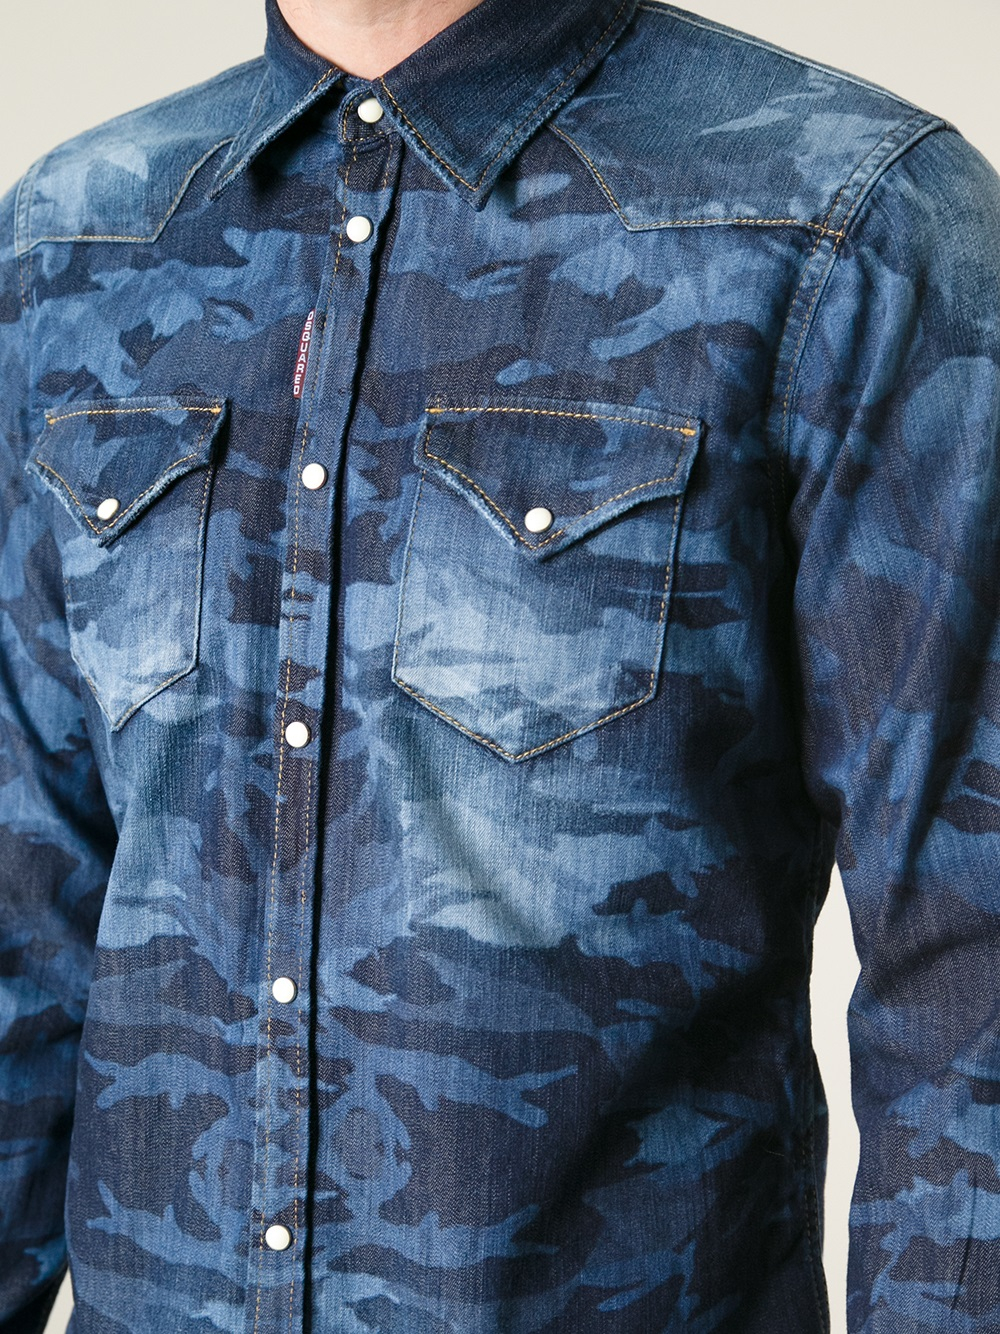 Dsquared 178 Camouflage Denim Shirt In Blue For Men Lyst